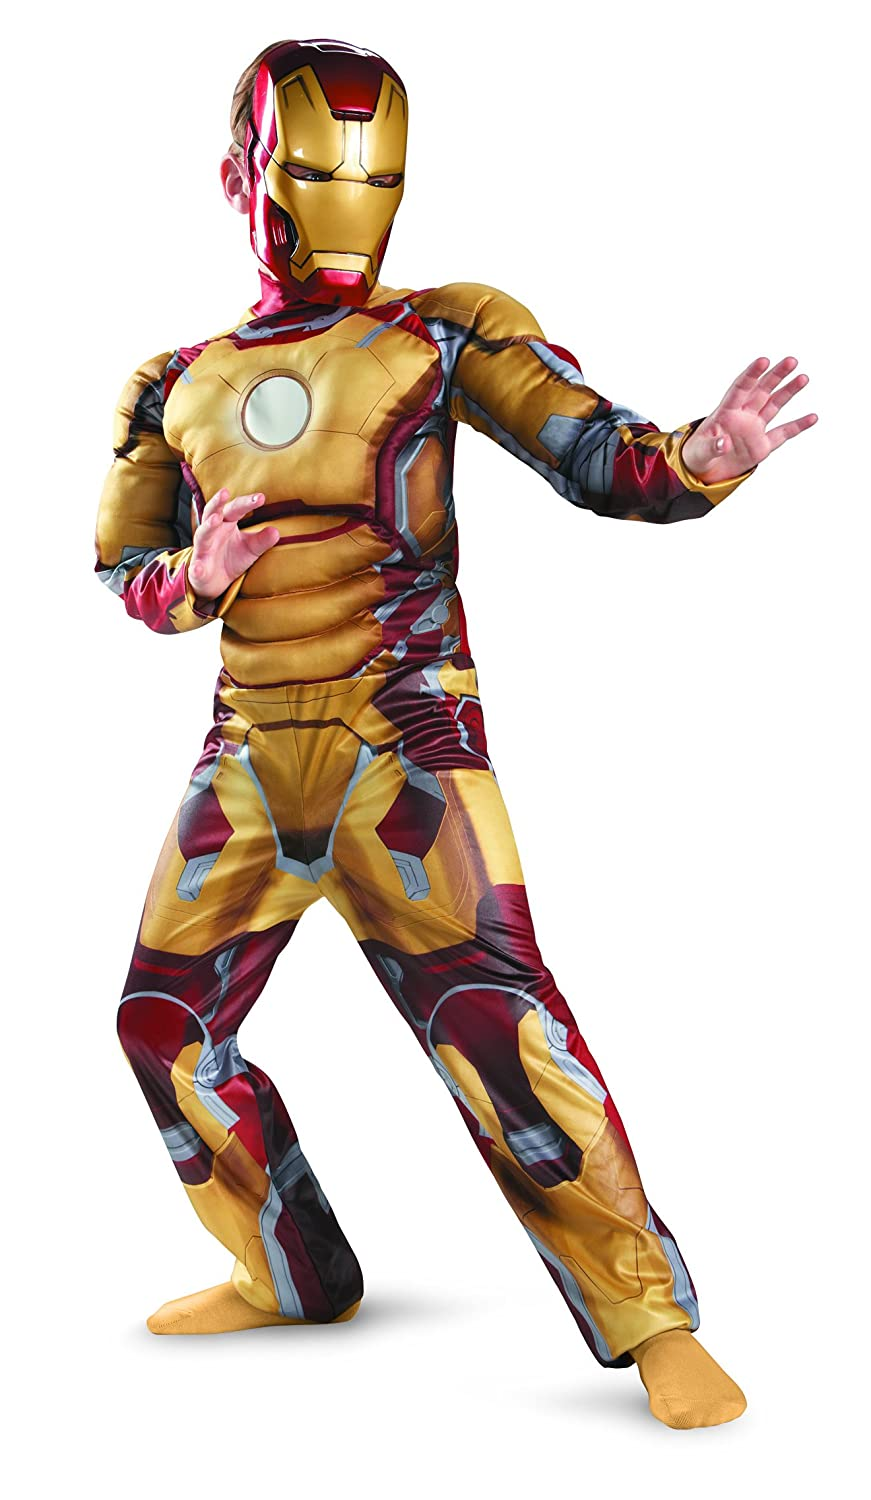 Amazon Prime Halloween Costumes.Halloween Costumes Up To 56 Off From Amazon Frozen Iron Man And